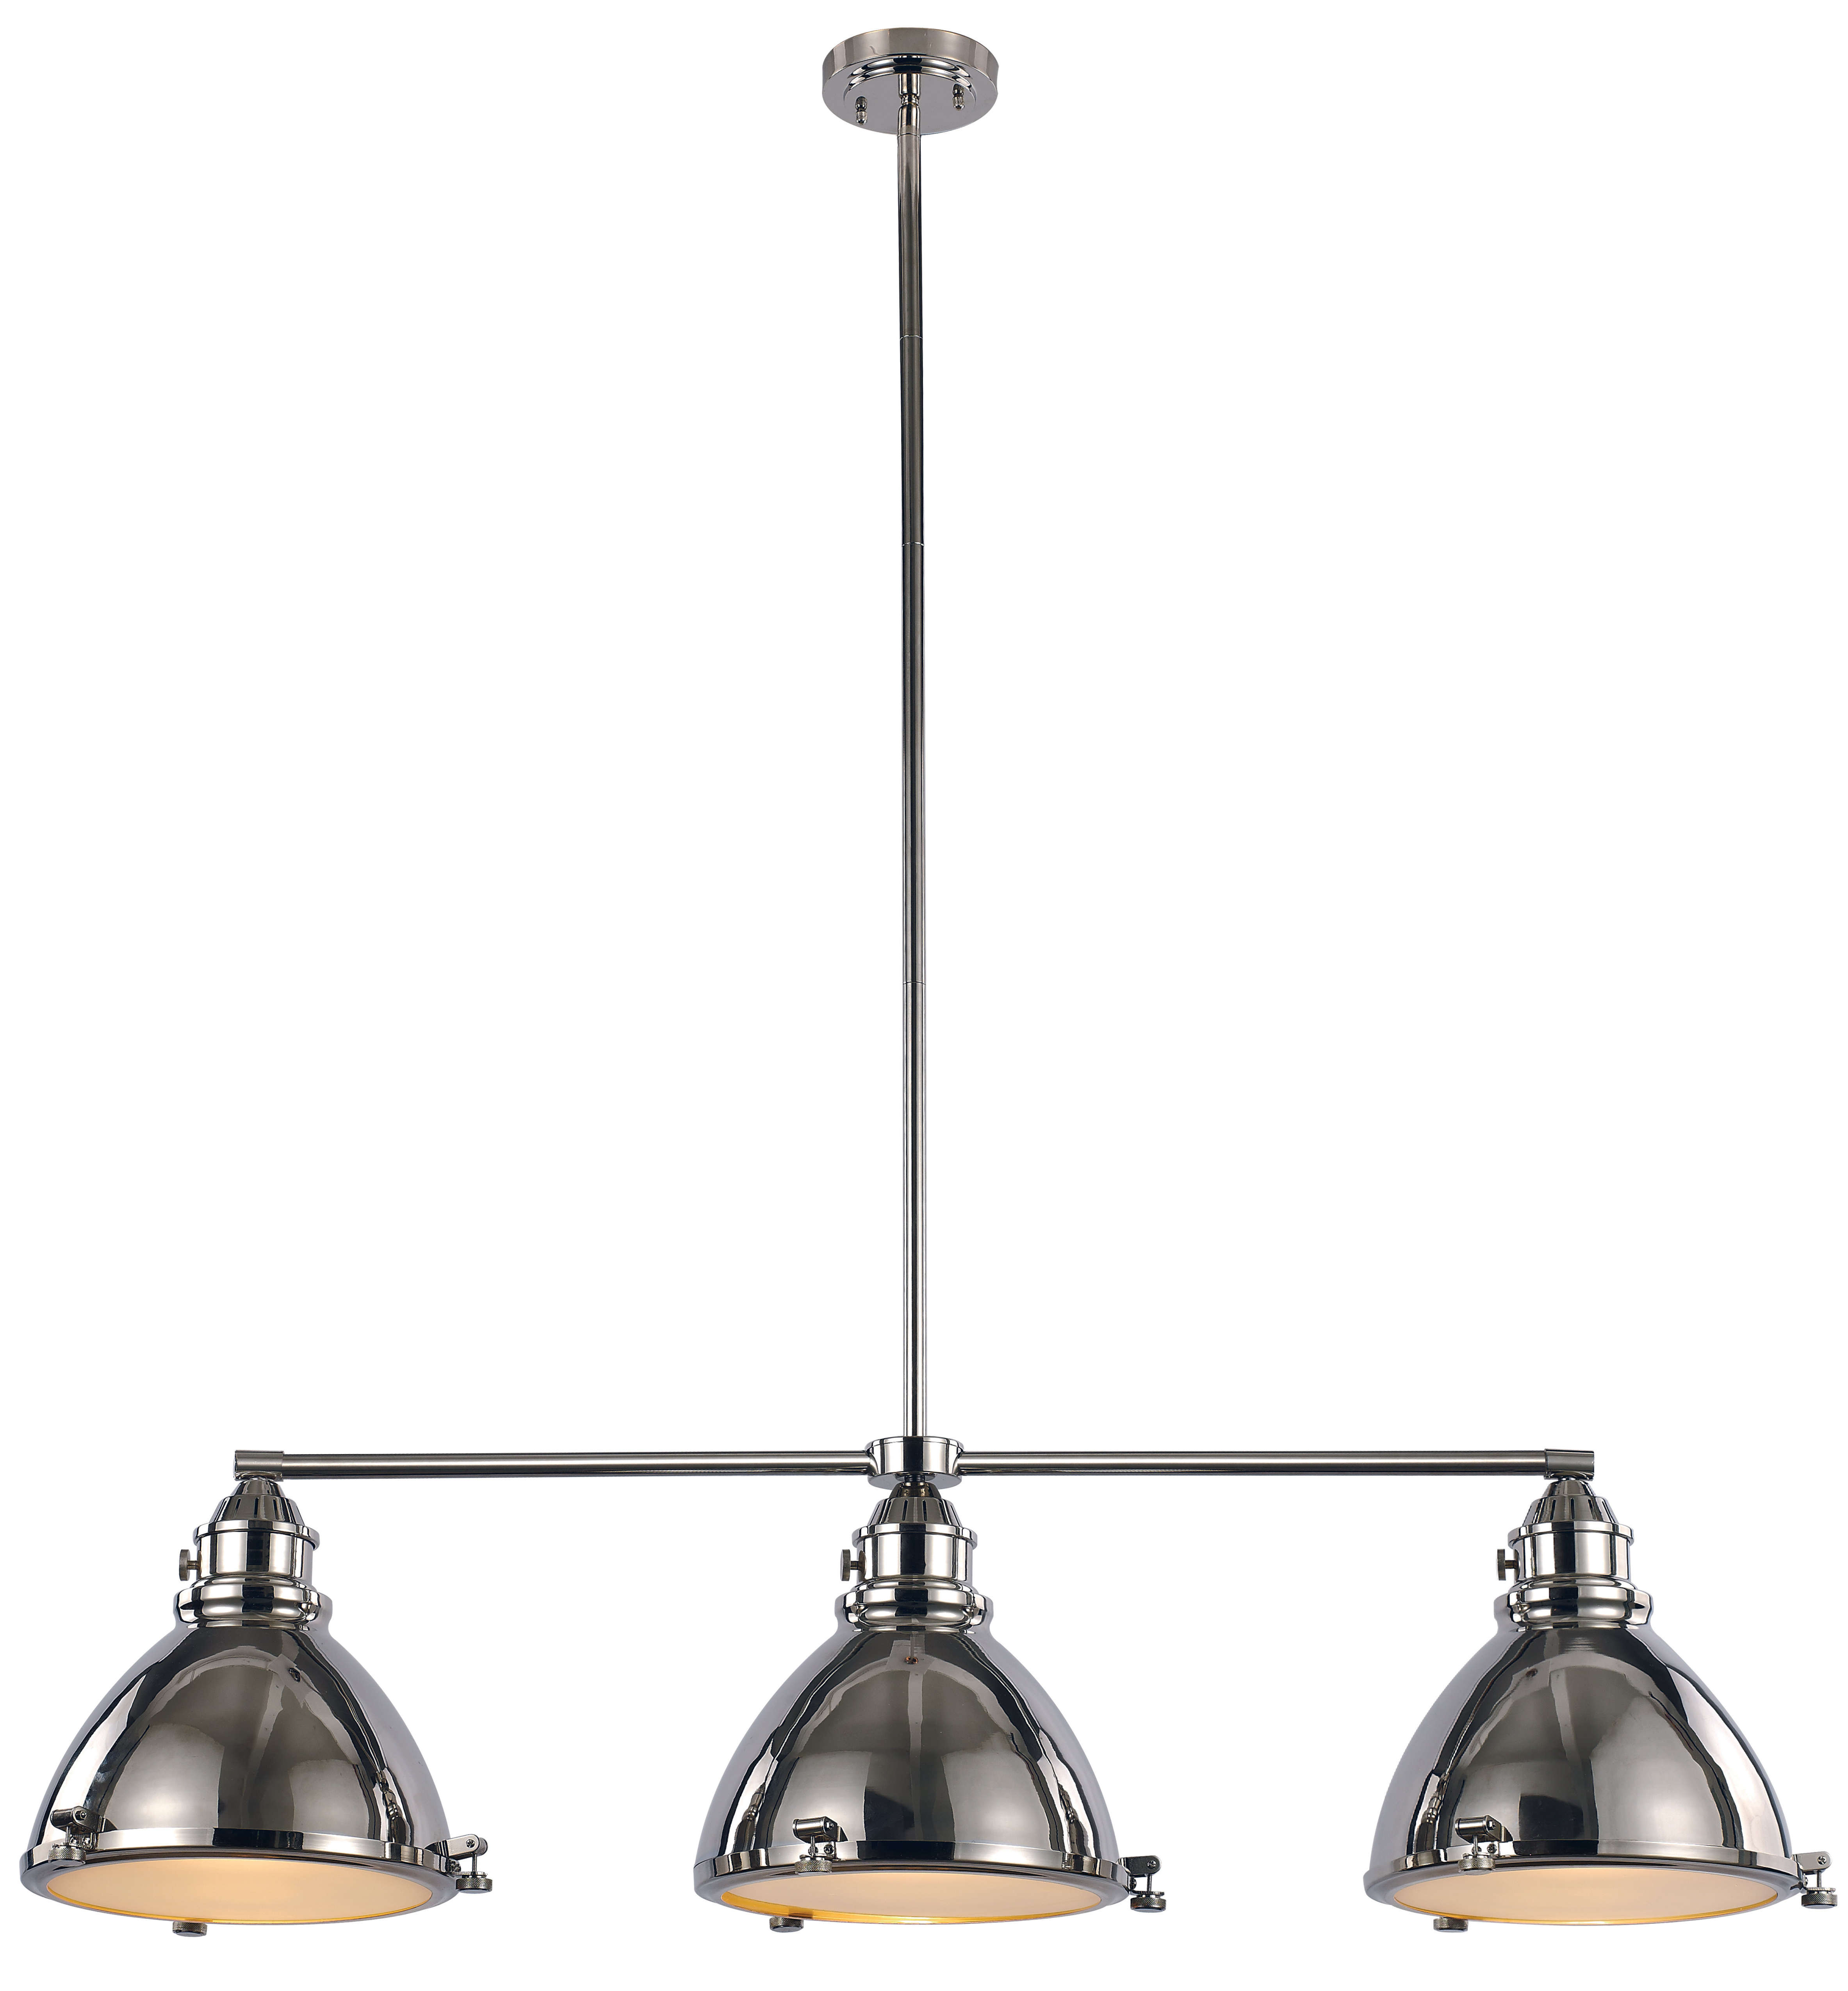 2020 Euclid 2-Light Kitchen Island Linear Pendants inside Laurel Foundry Modern Farmhouse Dewey 3-Light Kitchen Island Linear Pendant